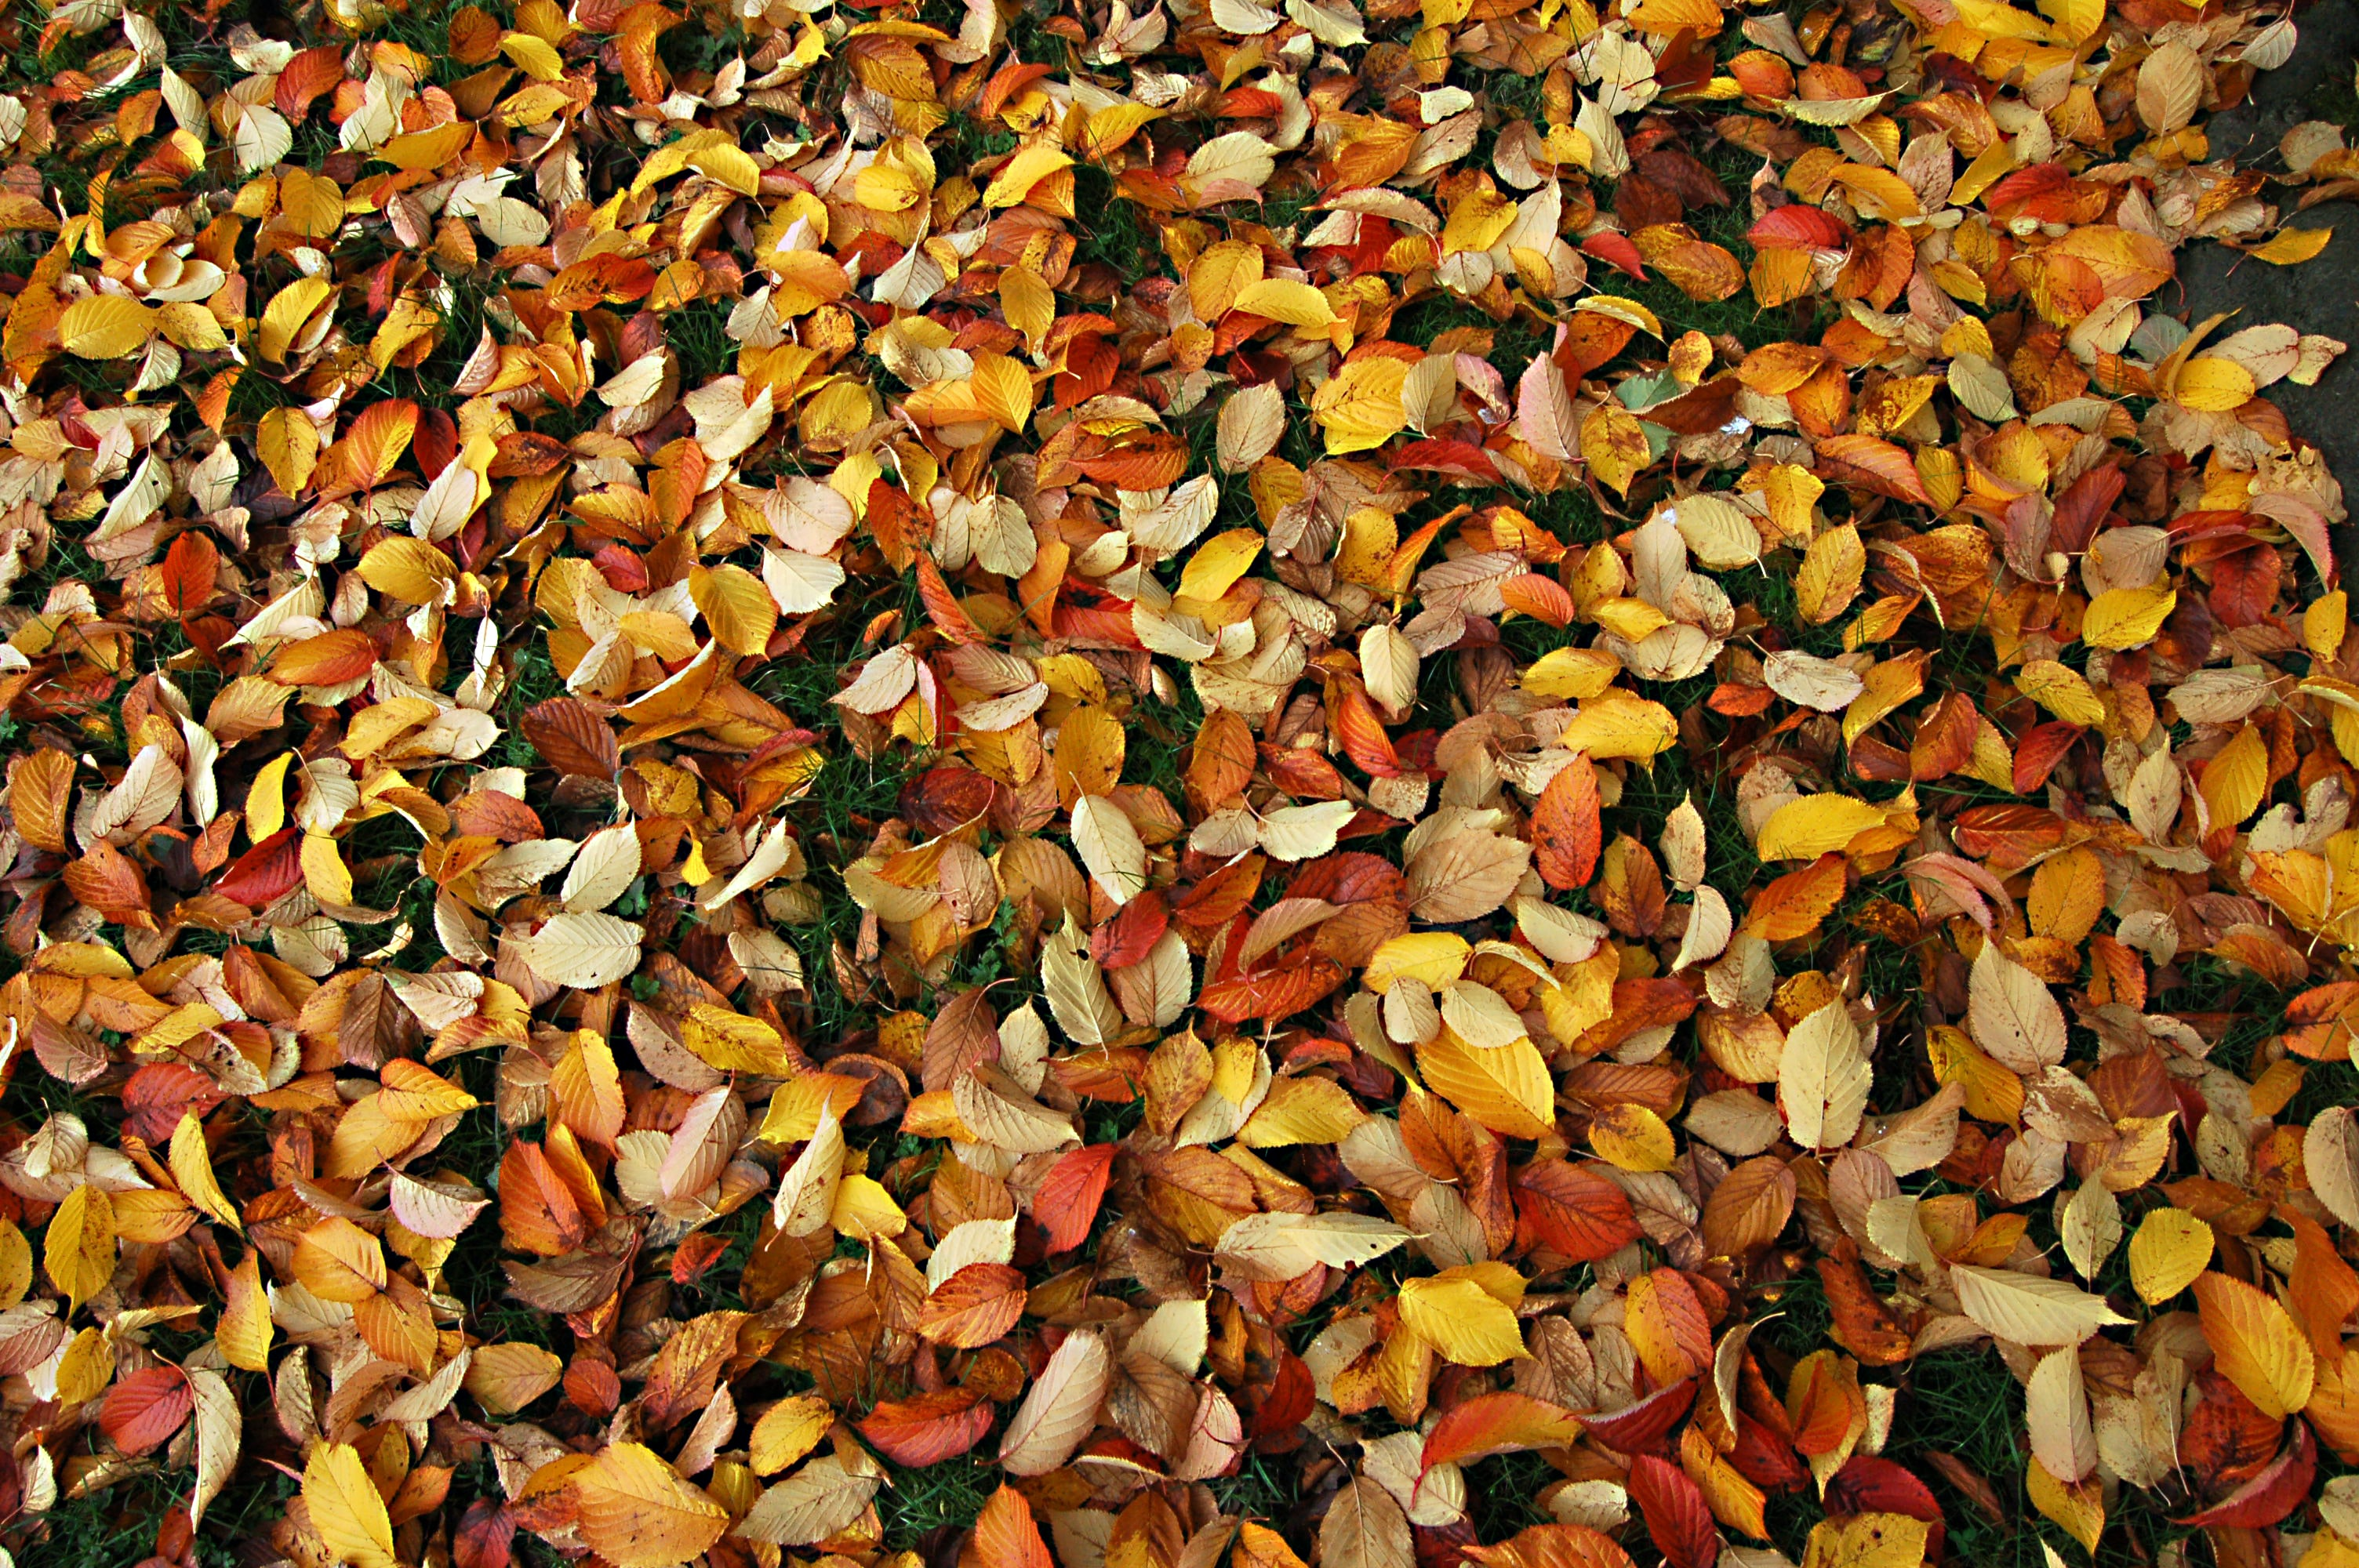 yellow and red leaves on grass field